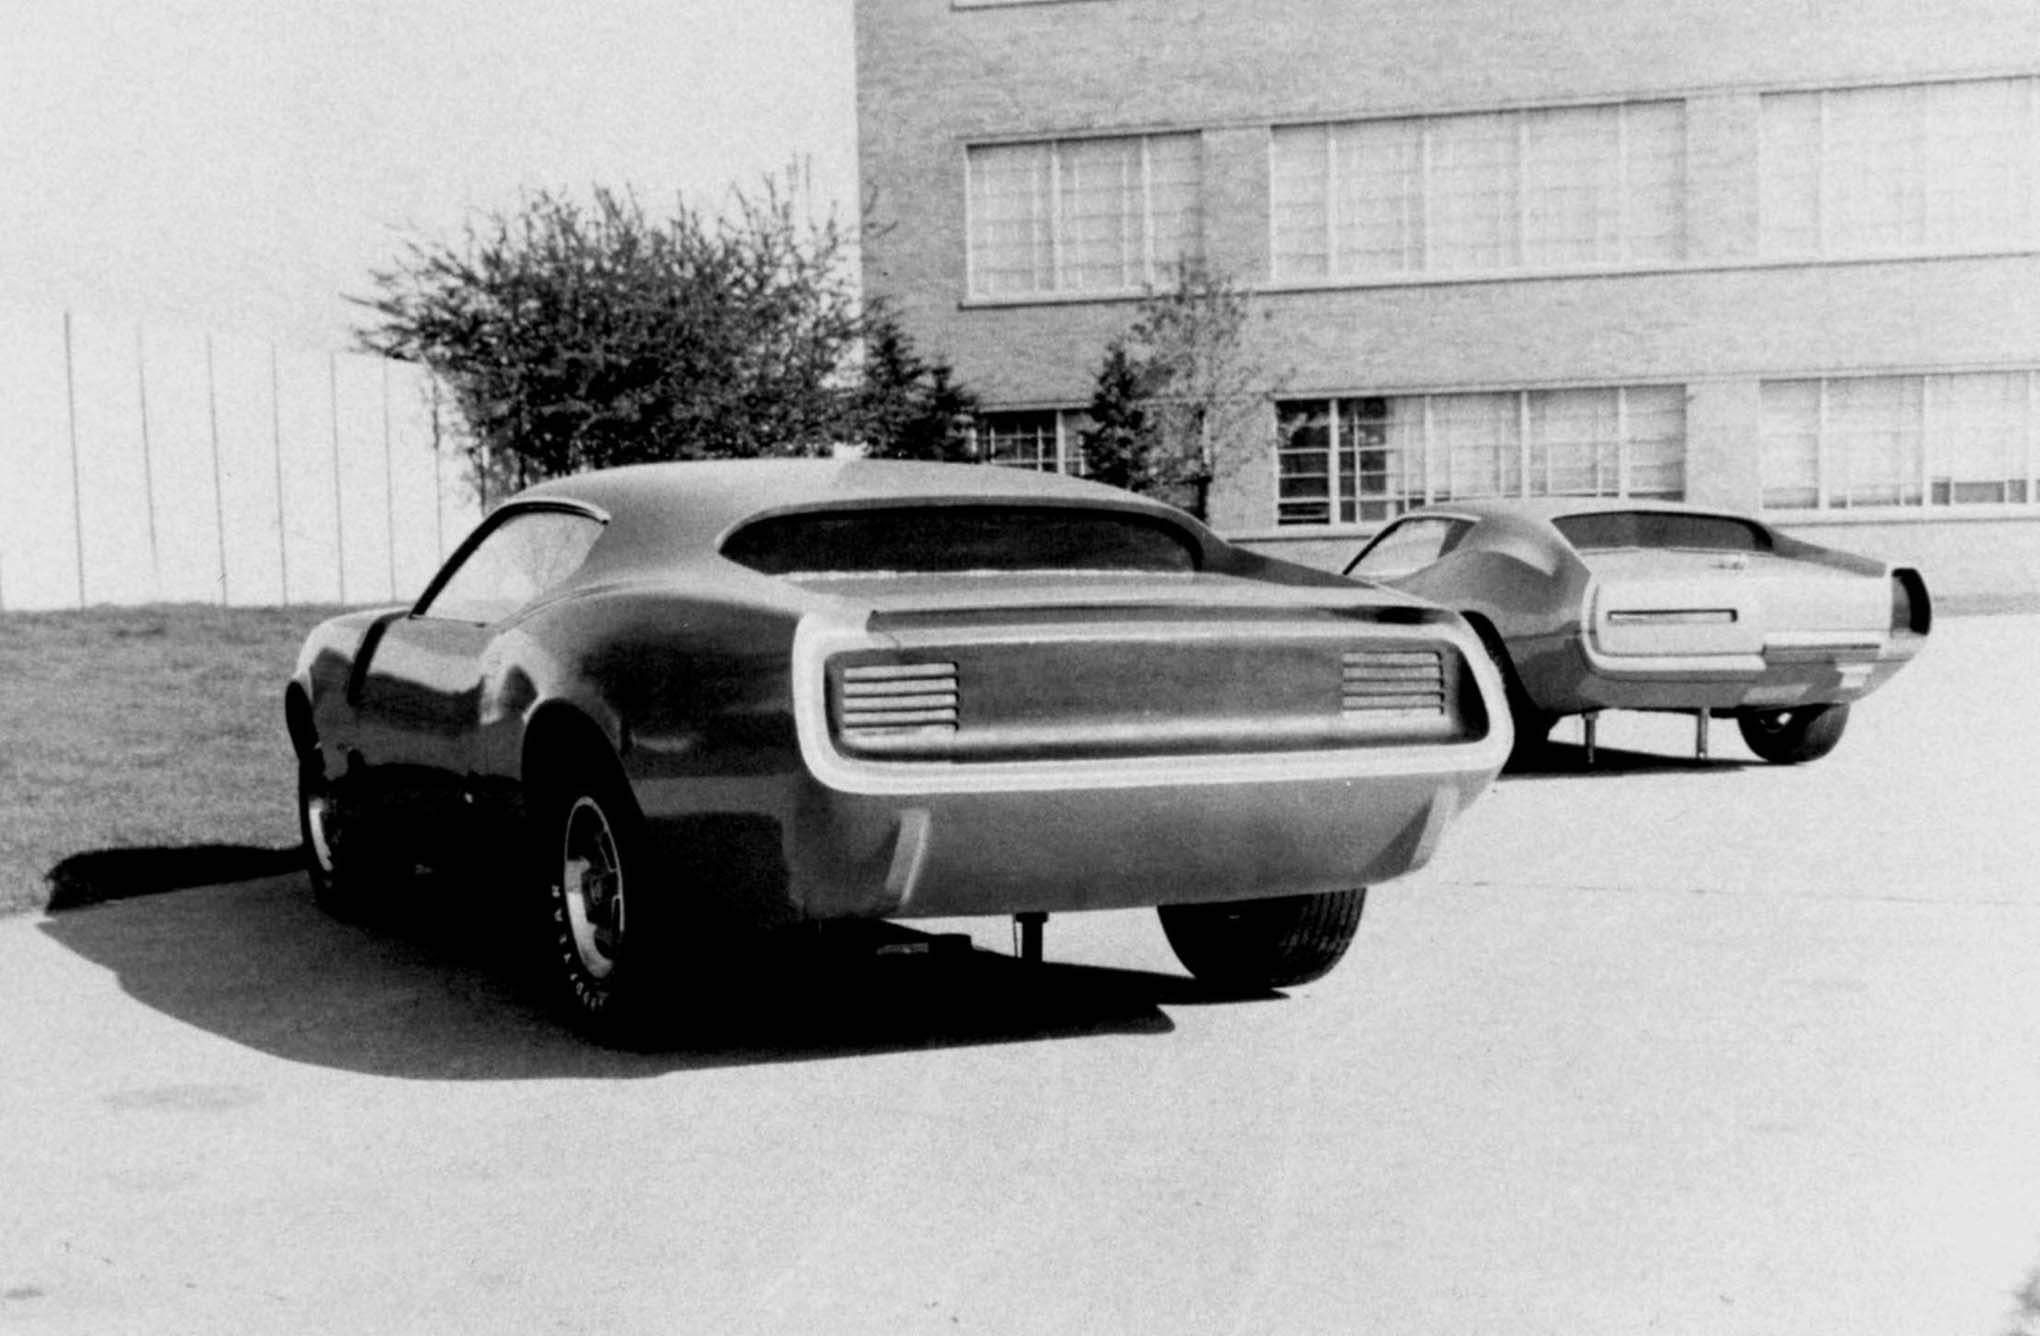 "Check out these two variations on the fourth-generation Barracuda theme. On the left is one of Matsurra's clays, with its deep-tunneled backlight that faired into quarters. The quarter panel ramps were similar to the 1970 - 1974 design. The spoiler was center mounted on the decklid and blended into the ends that were in line with the tops of the quarter panels. The tail lamp panel was recessed above what would have been a concealed rear bumper. On the right is Don Hood's ""Vestige"" clay with two different proposals for tail lamp and rear bumper configurations. Notice the extreme ramping over the rear wheel opening."